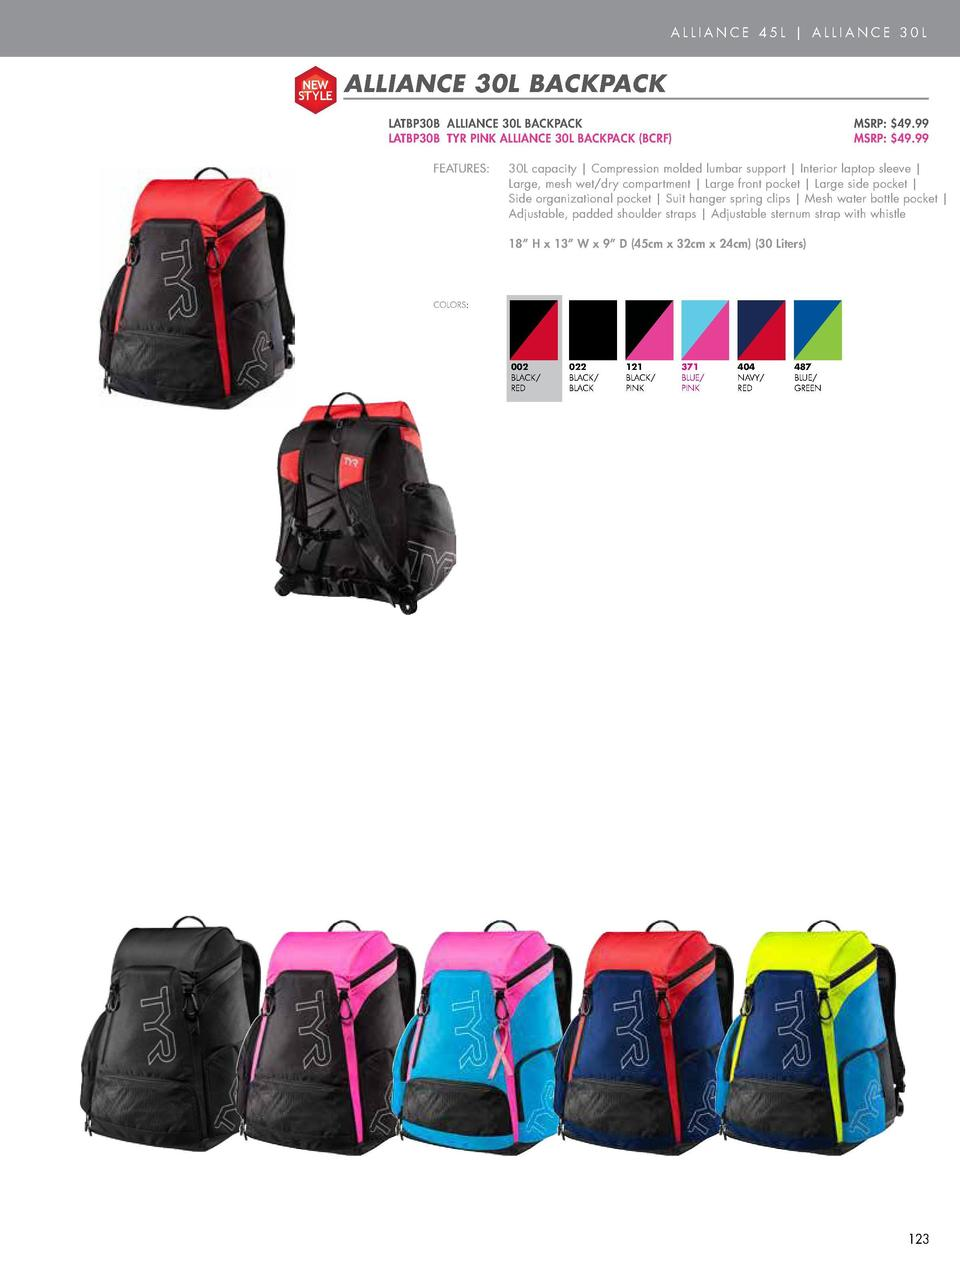 BAGS  ALLIANCE 45L   ALLIANCE 30L  NEW STYLE  ALLIANCE 45L BACKPACK  NEW STYLE  LATBP45 ALLIANCE 45L BACKPACK  MSRP   59.9...